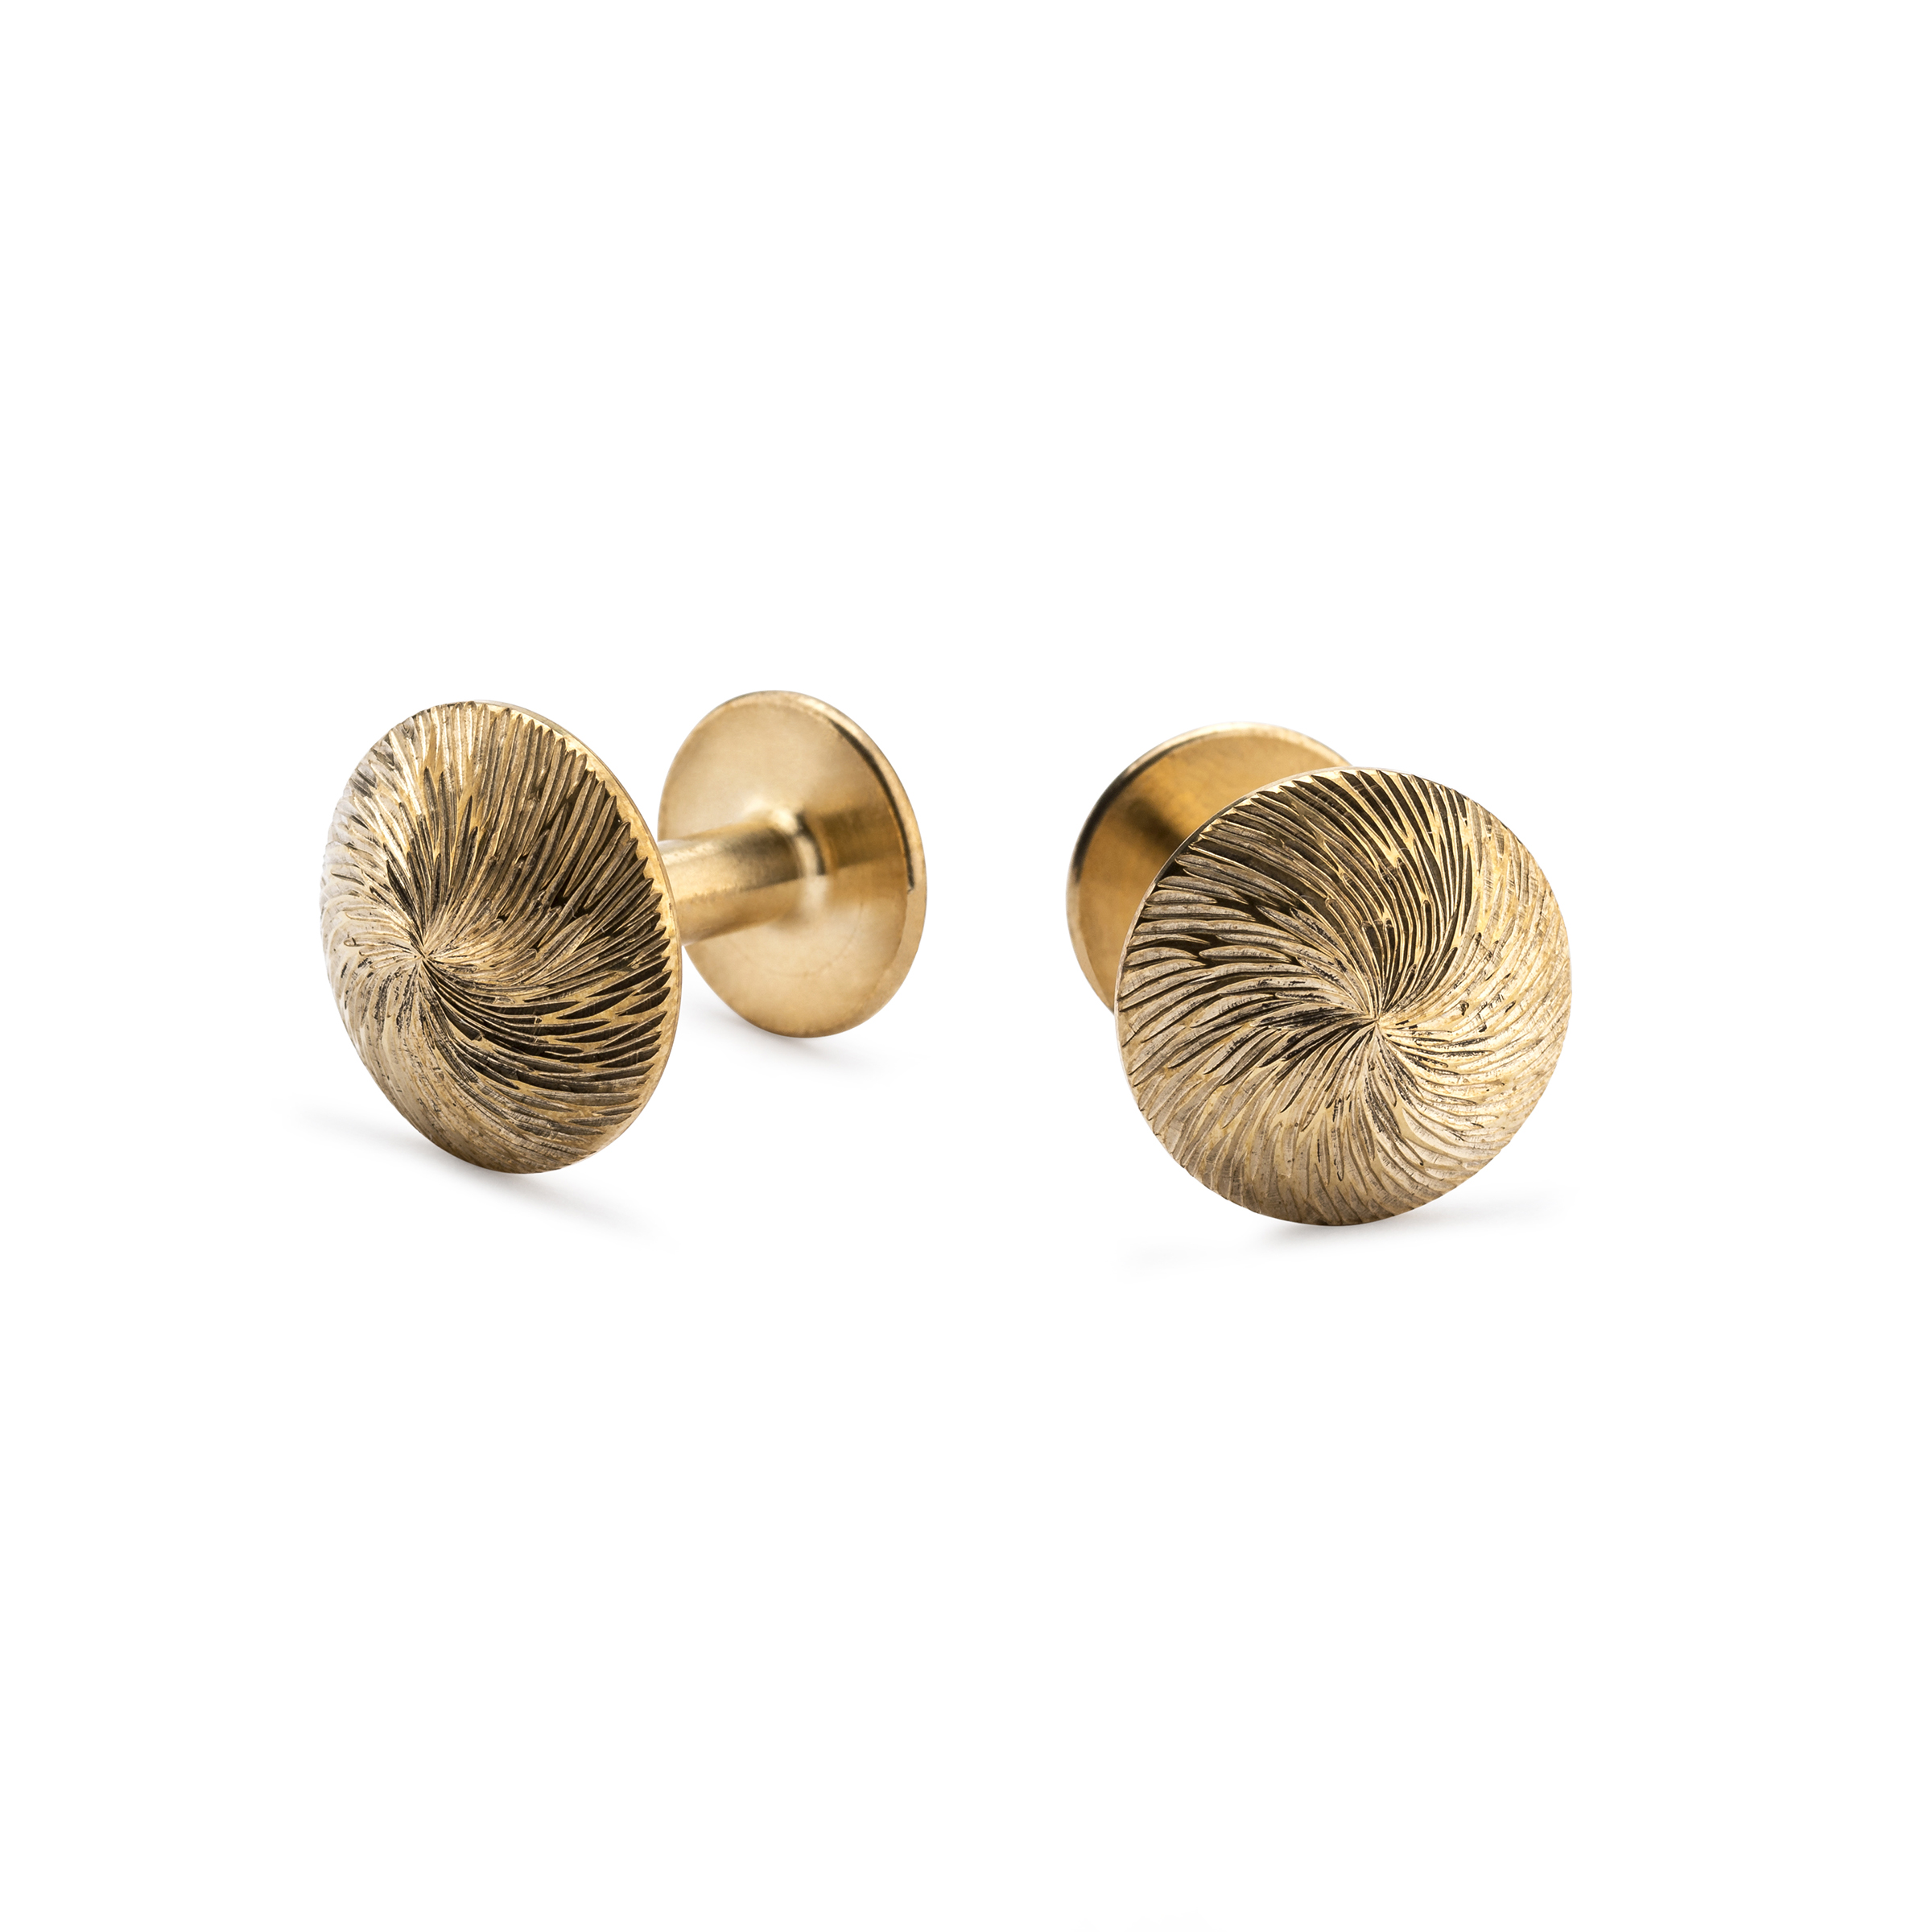 NEW Alice Made This 'Sketch Collection' James - Sprial Cut Gold Cufflinks - £245.00.jpg